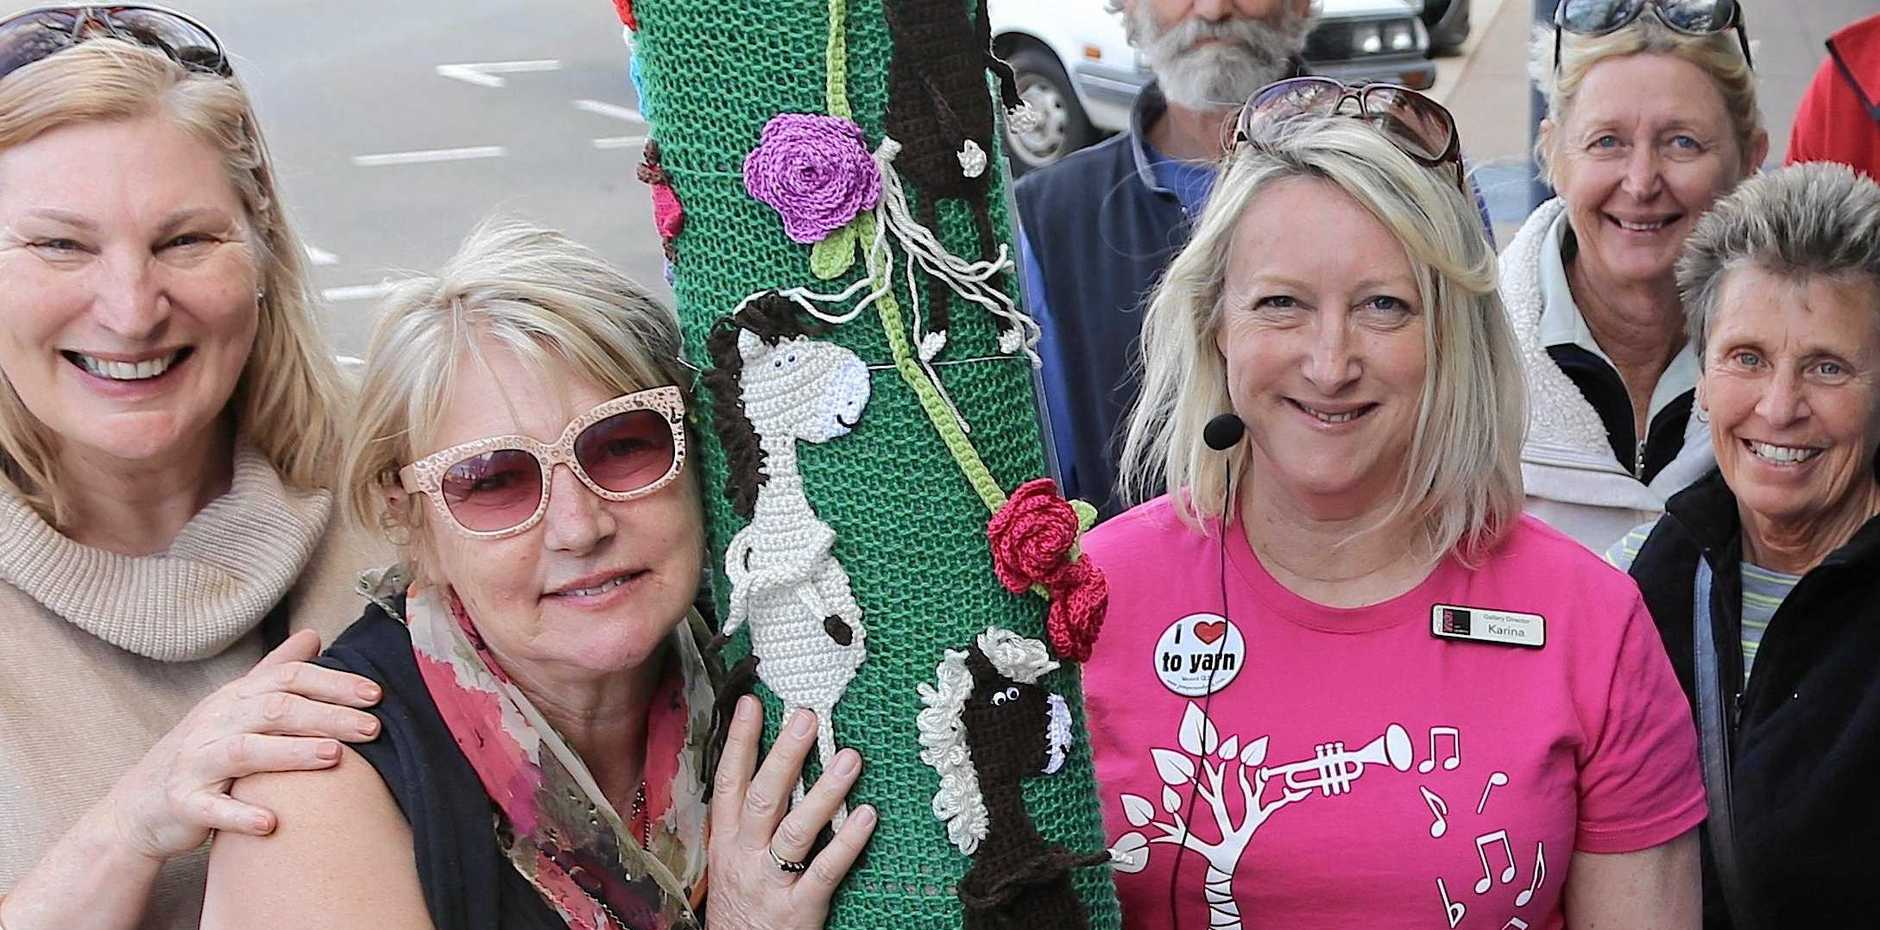 WINTER IS HERE: A yarn blast from the past as Warwick prepares for its annual Jumpers and Jazz Festival from July 18-28, with its accompanying yarnbombing, this year themed Connect.